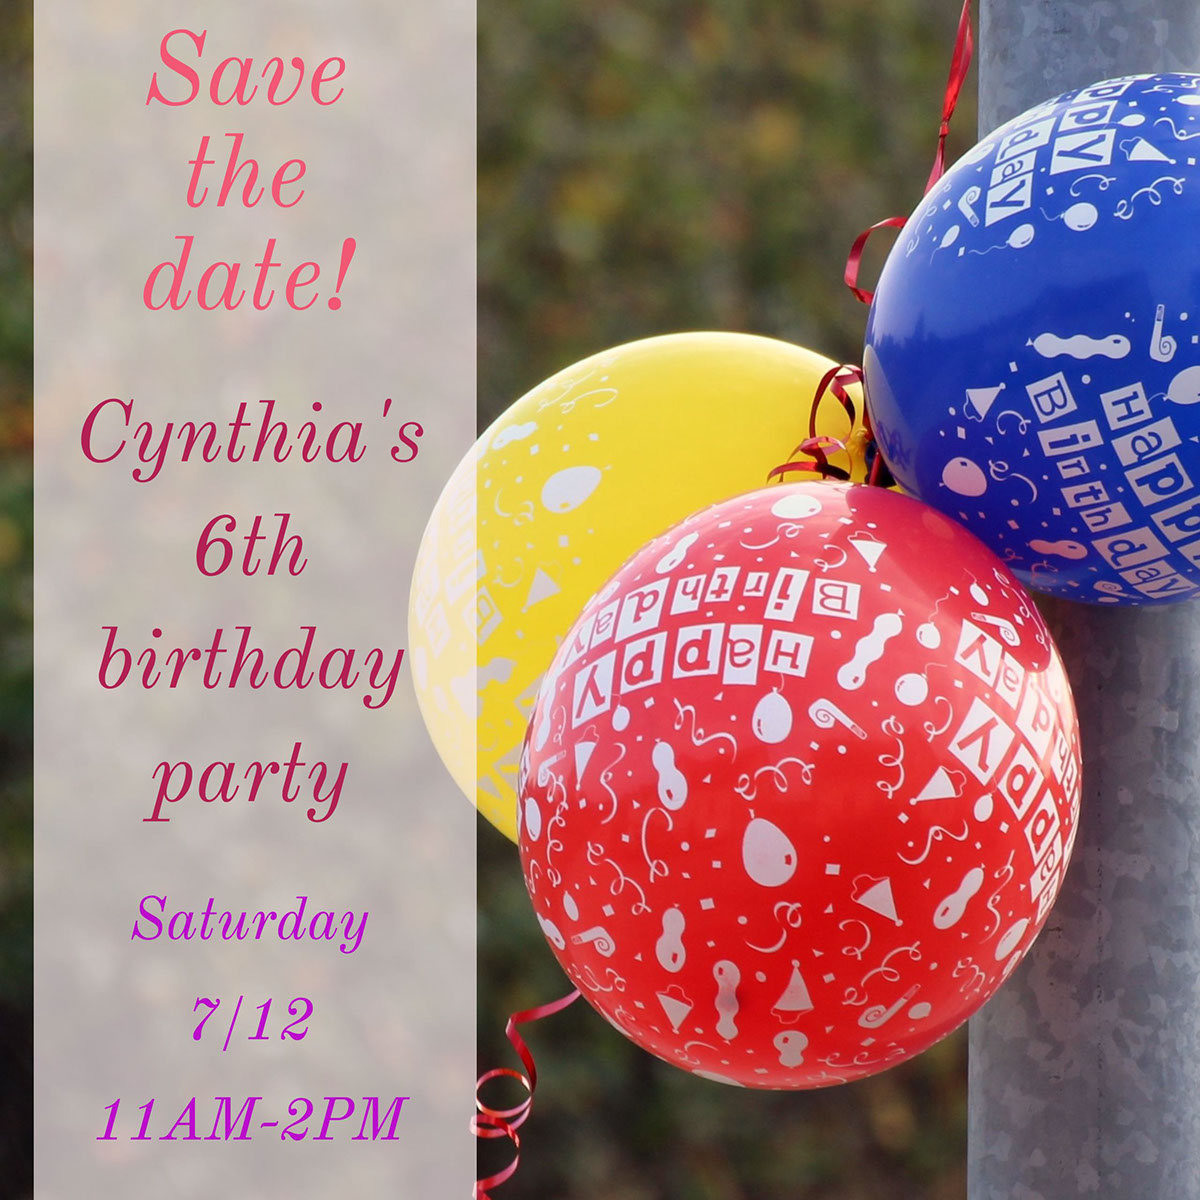 Cynthia's 6th birthday party